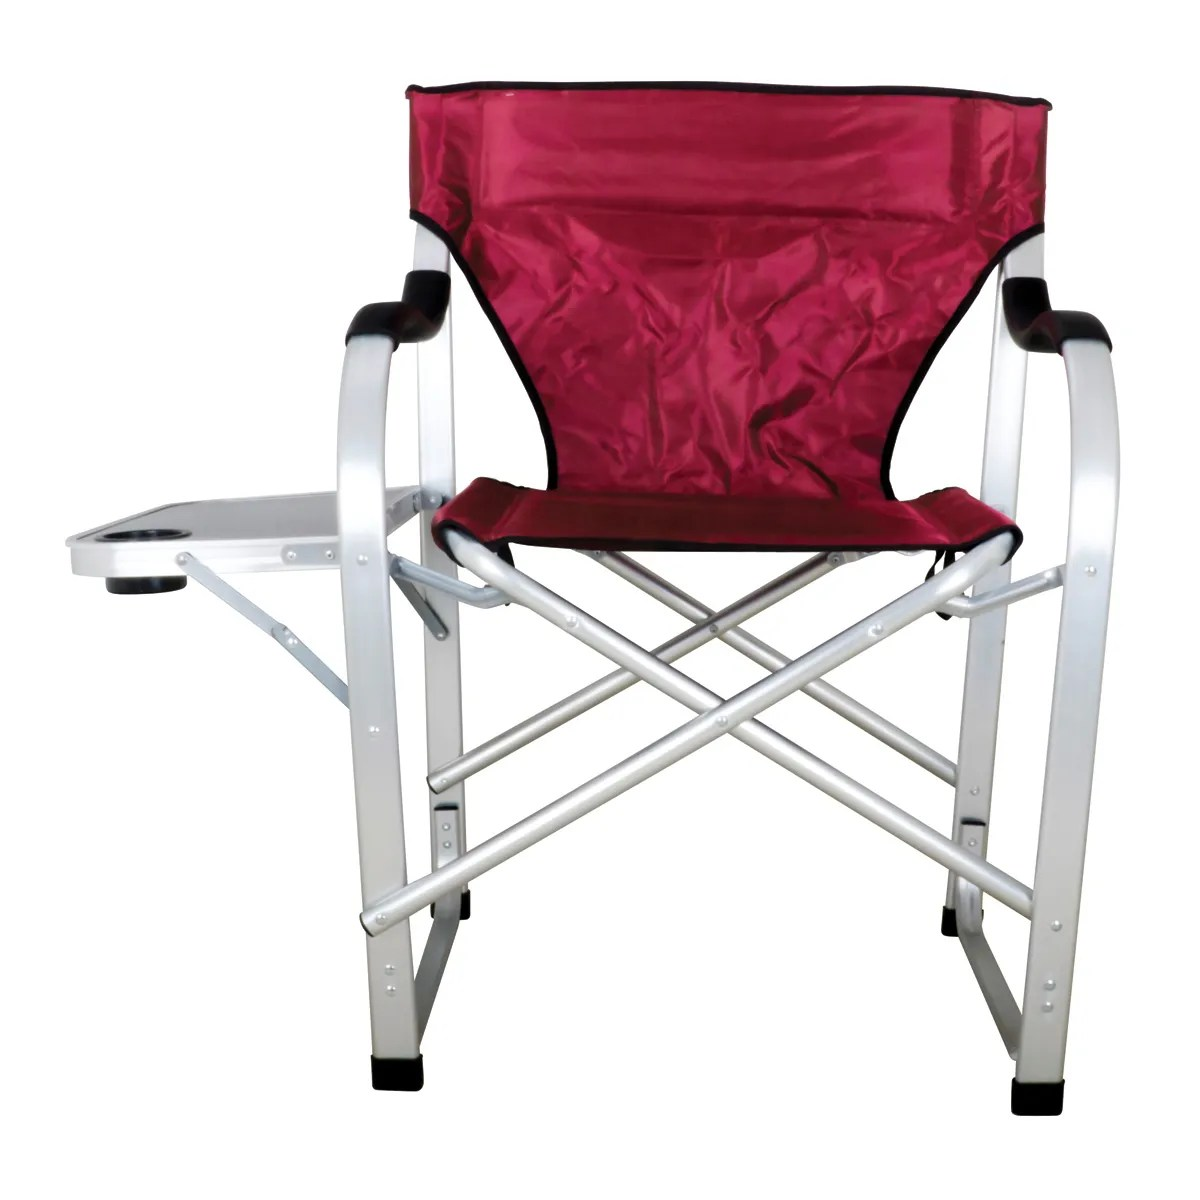 Collapsible Chair Heavy Duty Collapsible Lawn Chair Burgundy